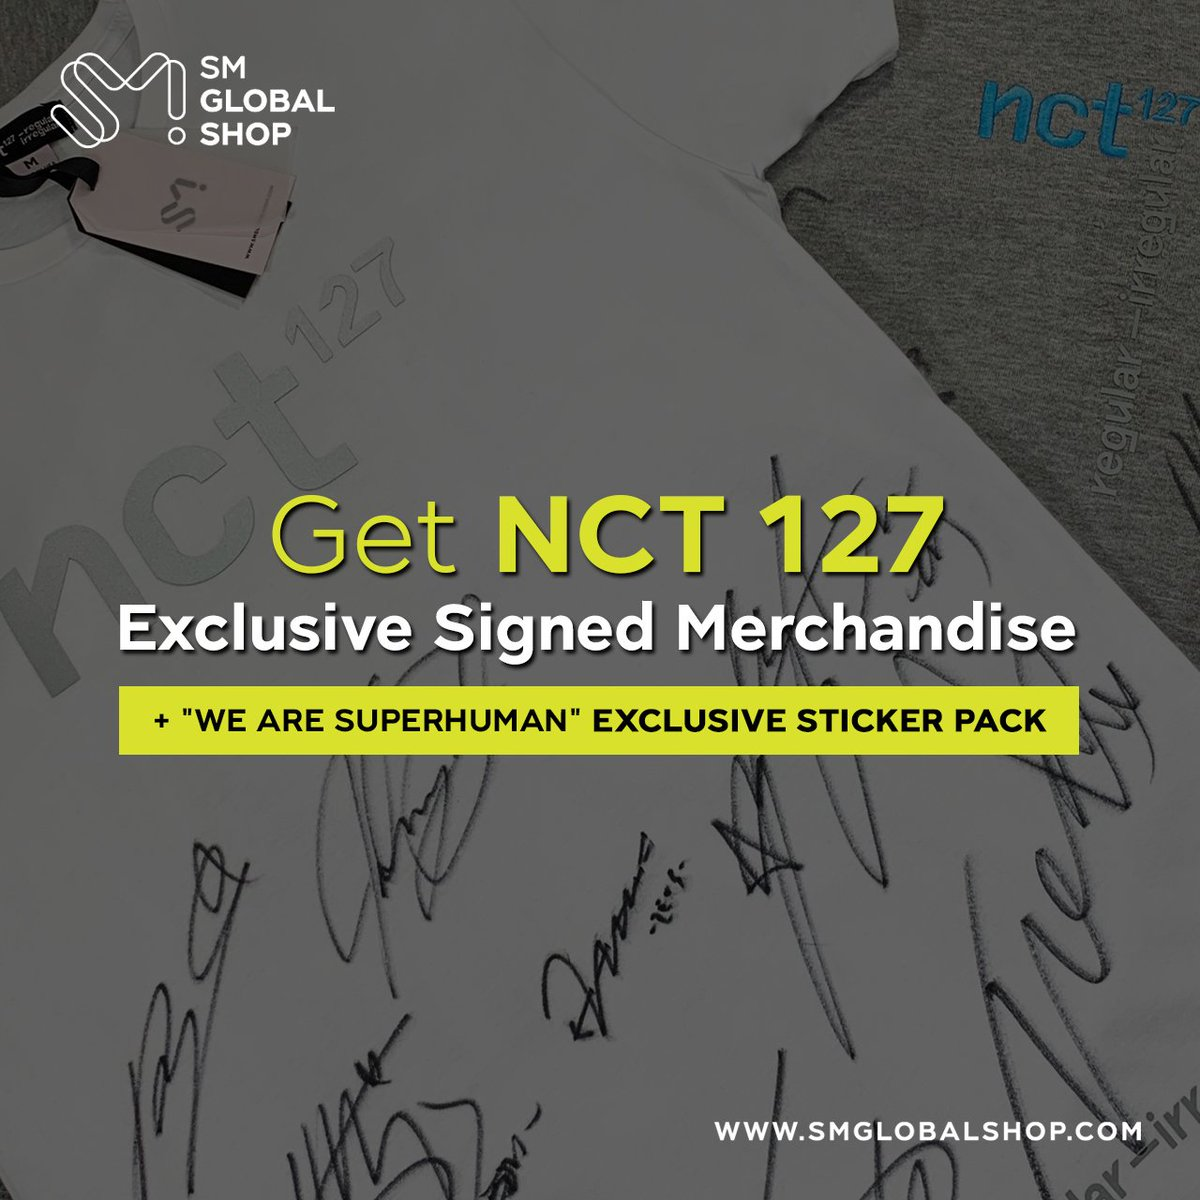 🎉NCT 127 Signed Merchandise Raffle & Exclusive Sticker Pack Event 🎉 For anyone who purchased a Pre-Order of 'WE ARE SUPERHUMAN', you will automatically receive ONE entry for a chance to win EXCLUSIVE SIGNED MD by NCT 127